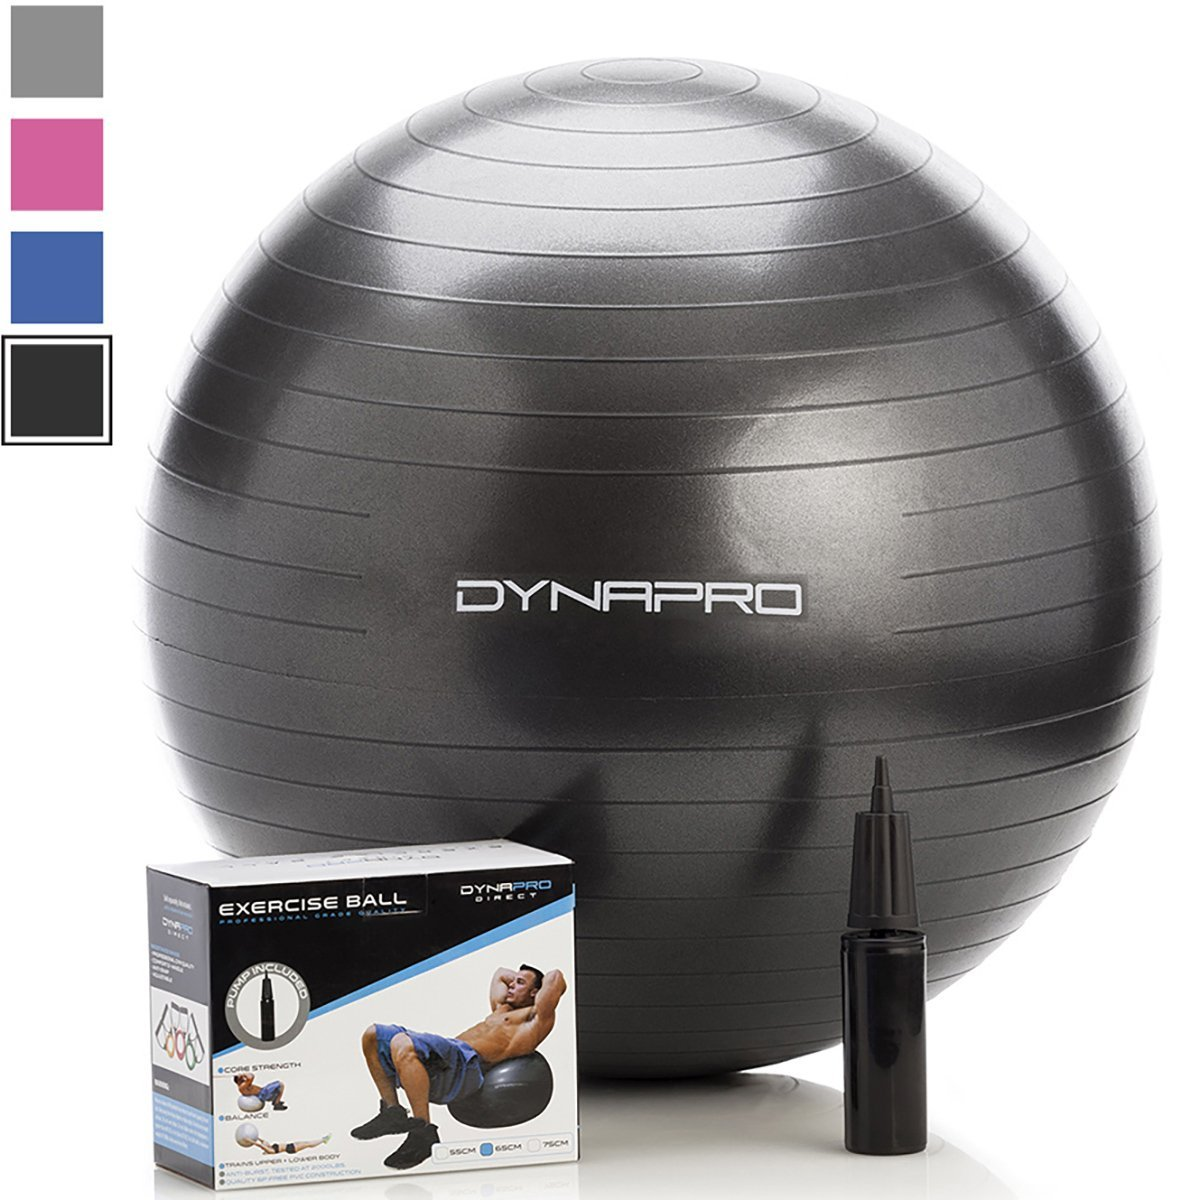 DynaPro Gym Quality Physio Exercise Ball - Perfect for Physical Therapy, Pilates, Yoga, and Personal Training